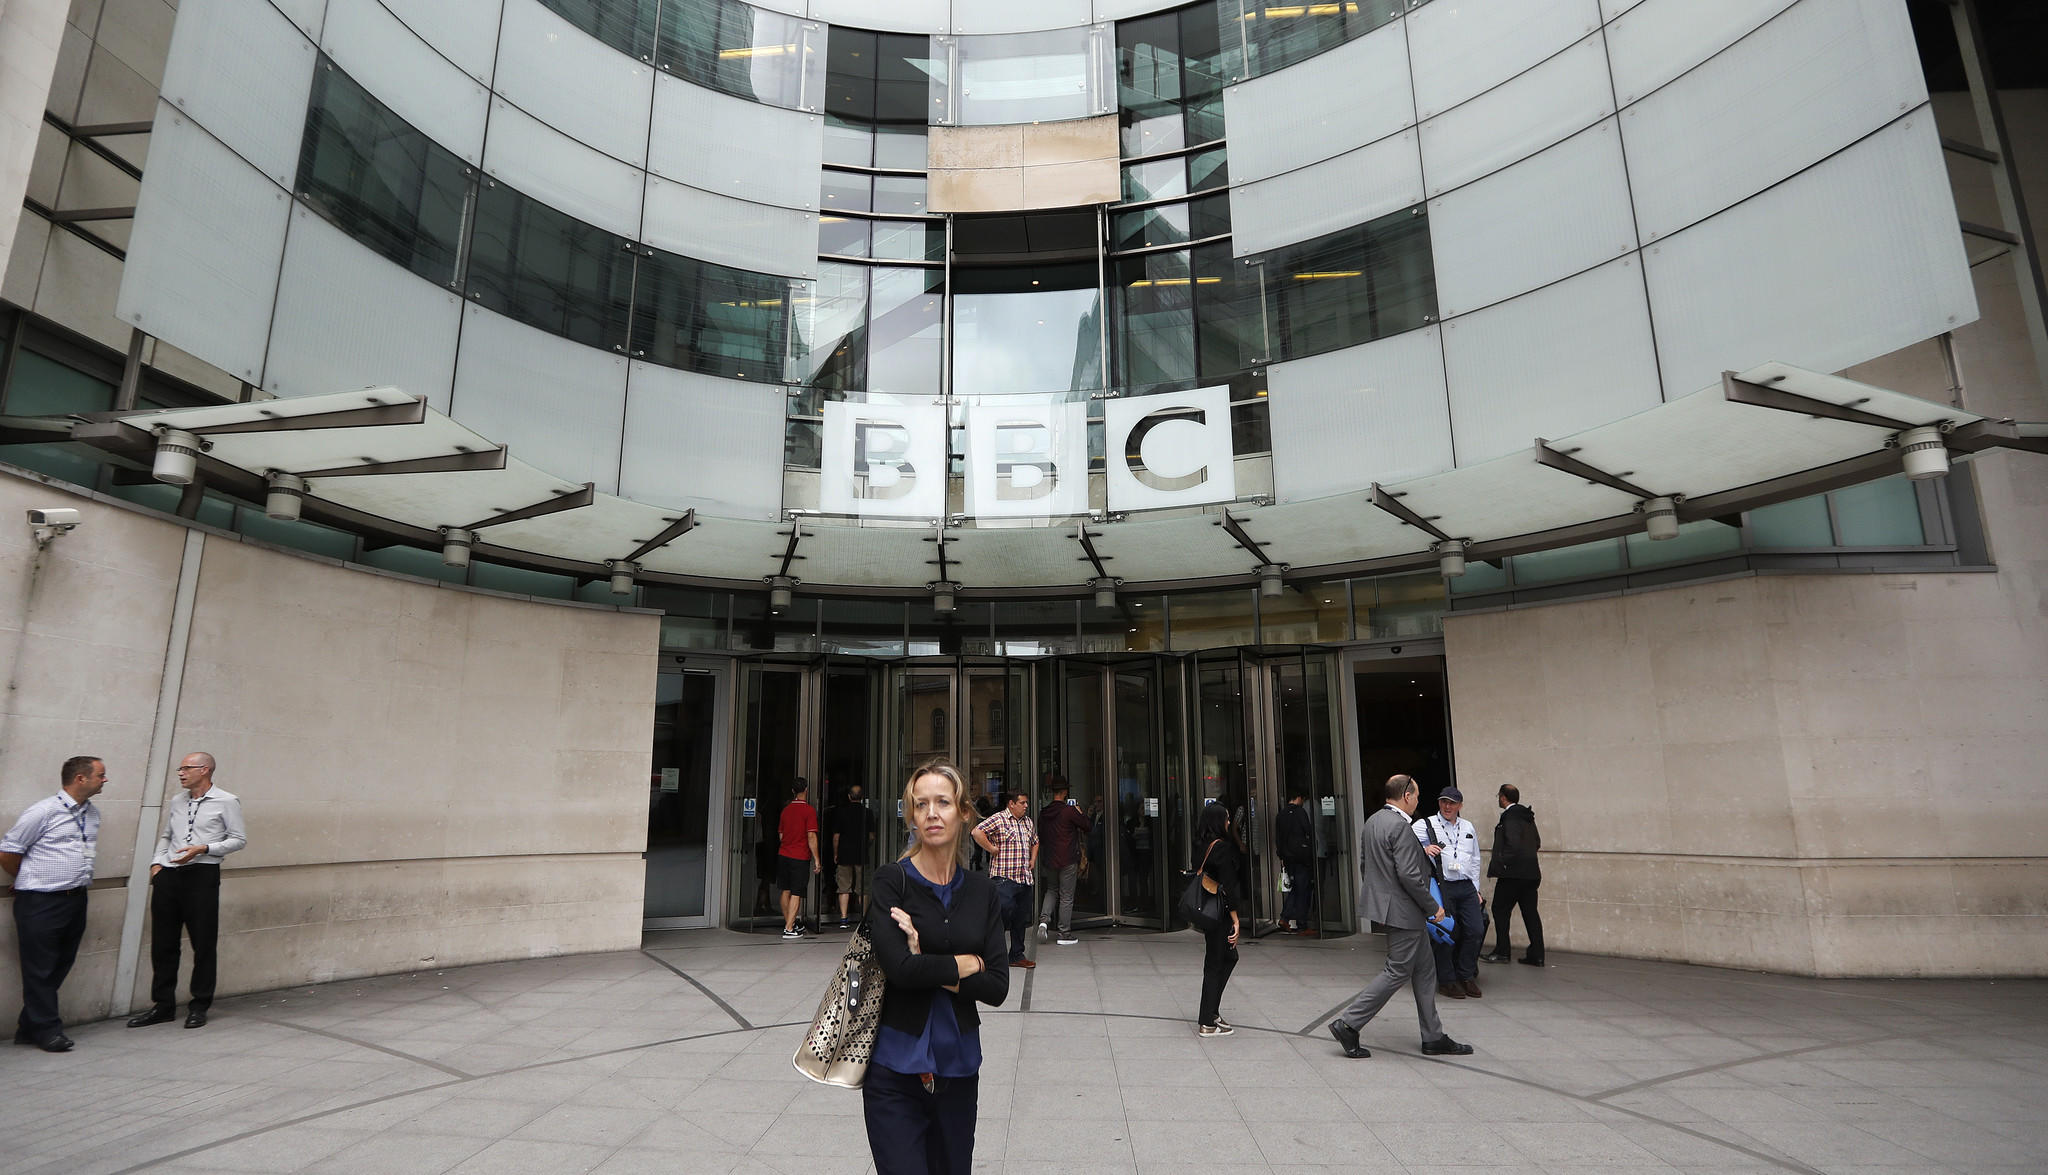 The main entrance to the headquarters of the BBC in London, where 45 female television presenters are demanding equal pay. (Frank Augstein / Associated Press)